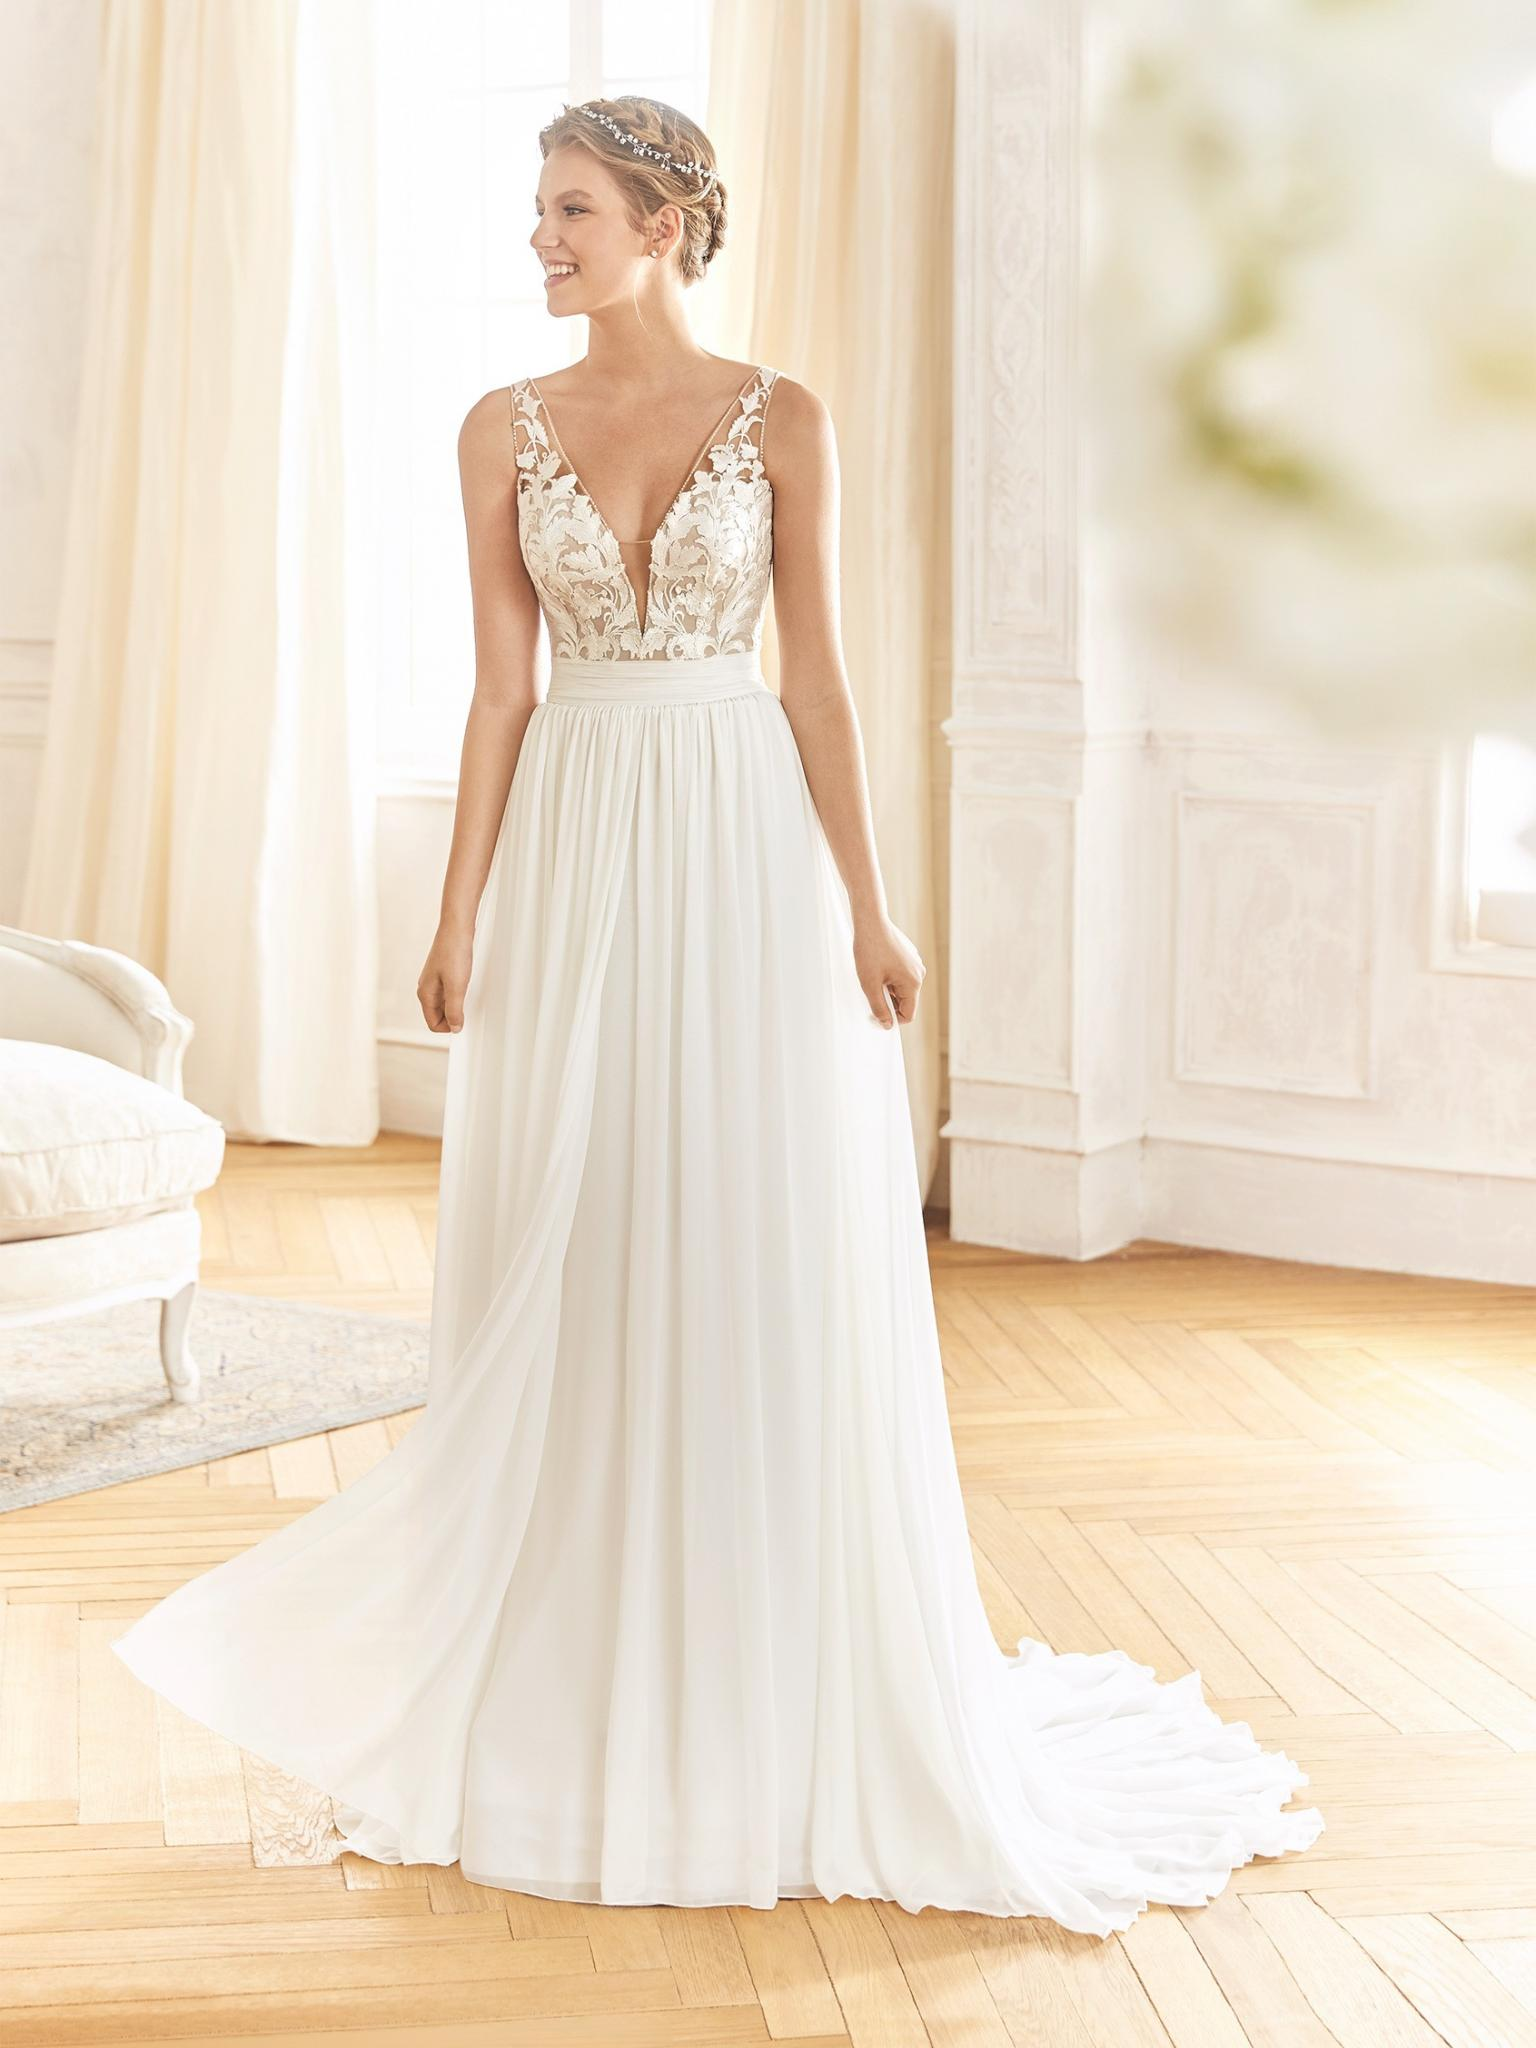 La Sposa BALIMENA B - Vestidos de Noiva 2019 - Bridal Collection 2019